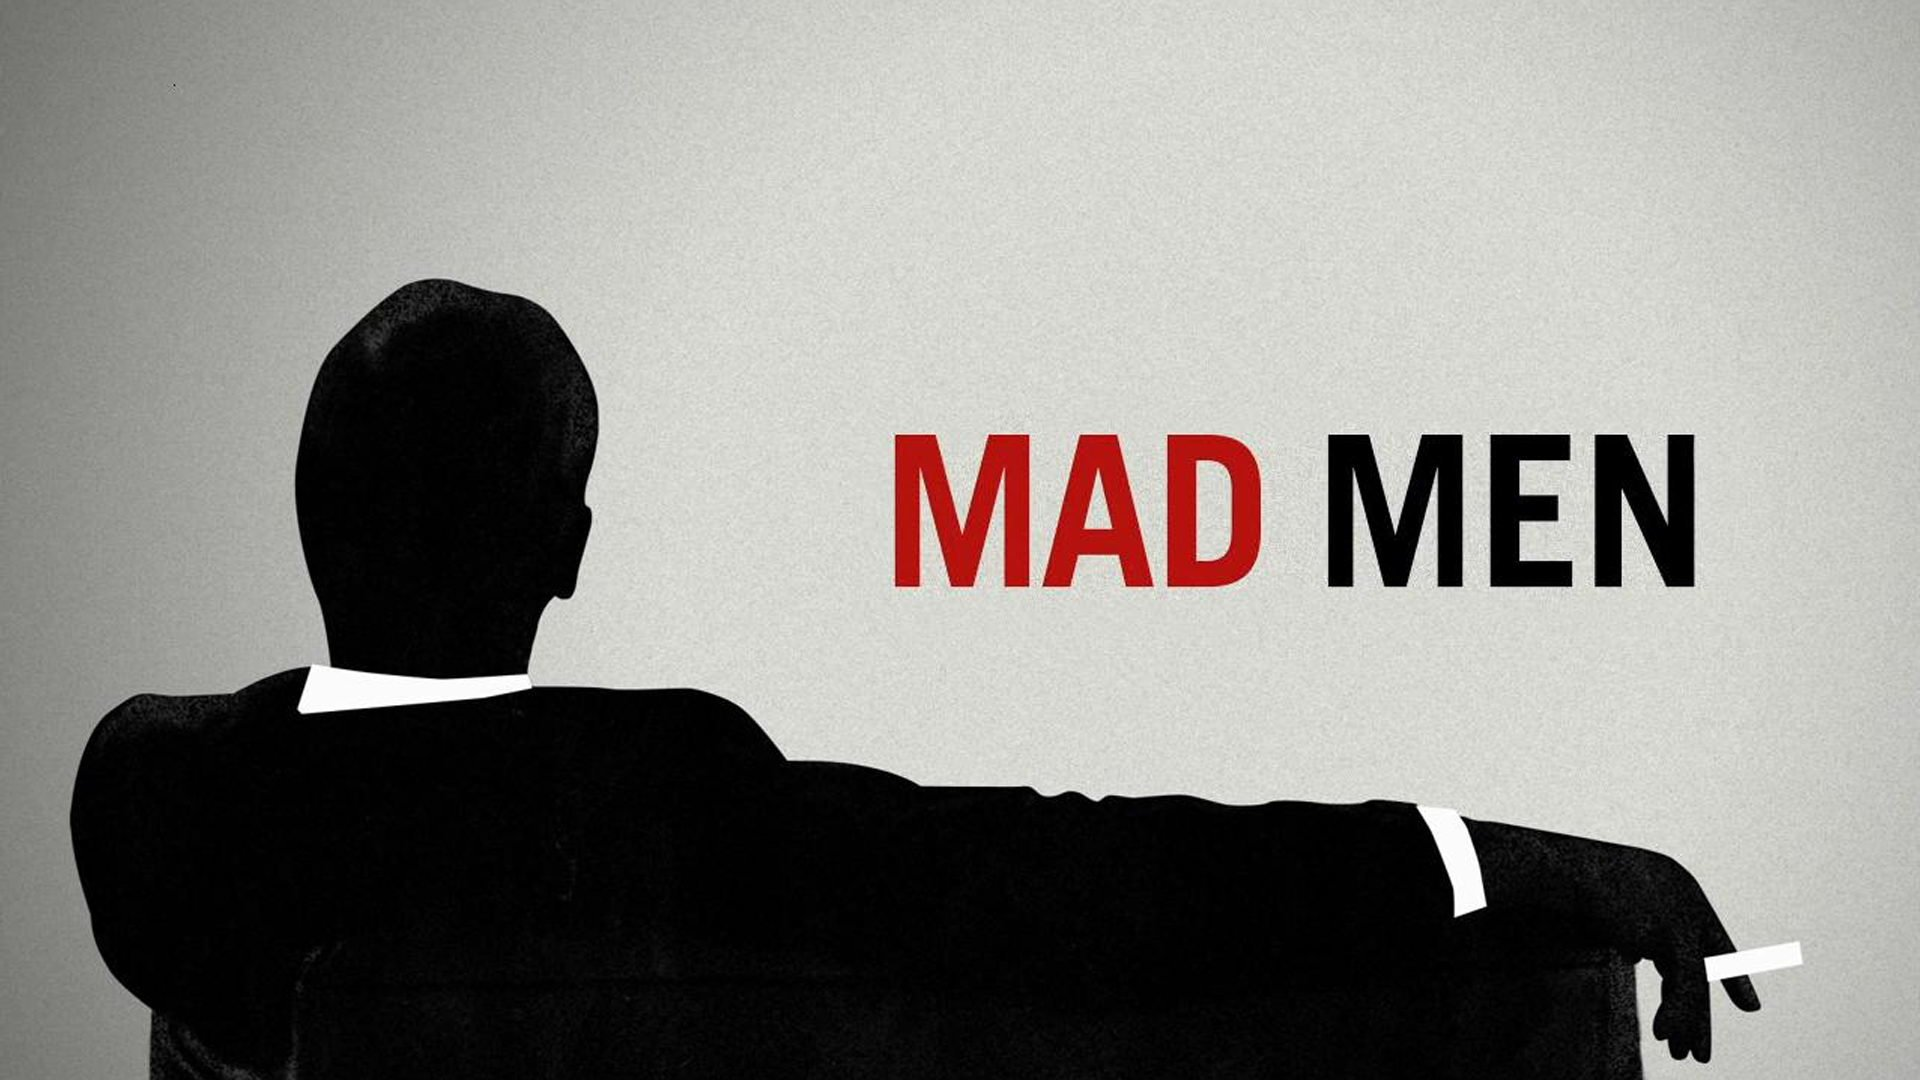 181 mad men hd wallpapers background images wallpaper abyss hd wallpaper background image id331781 voltagebd